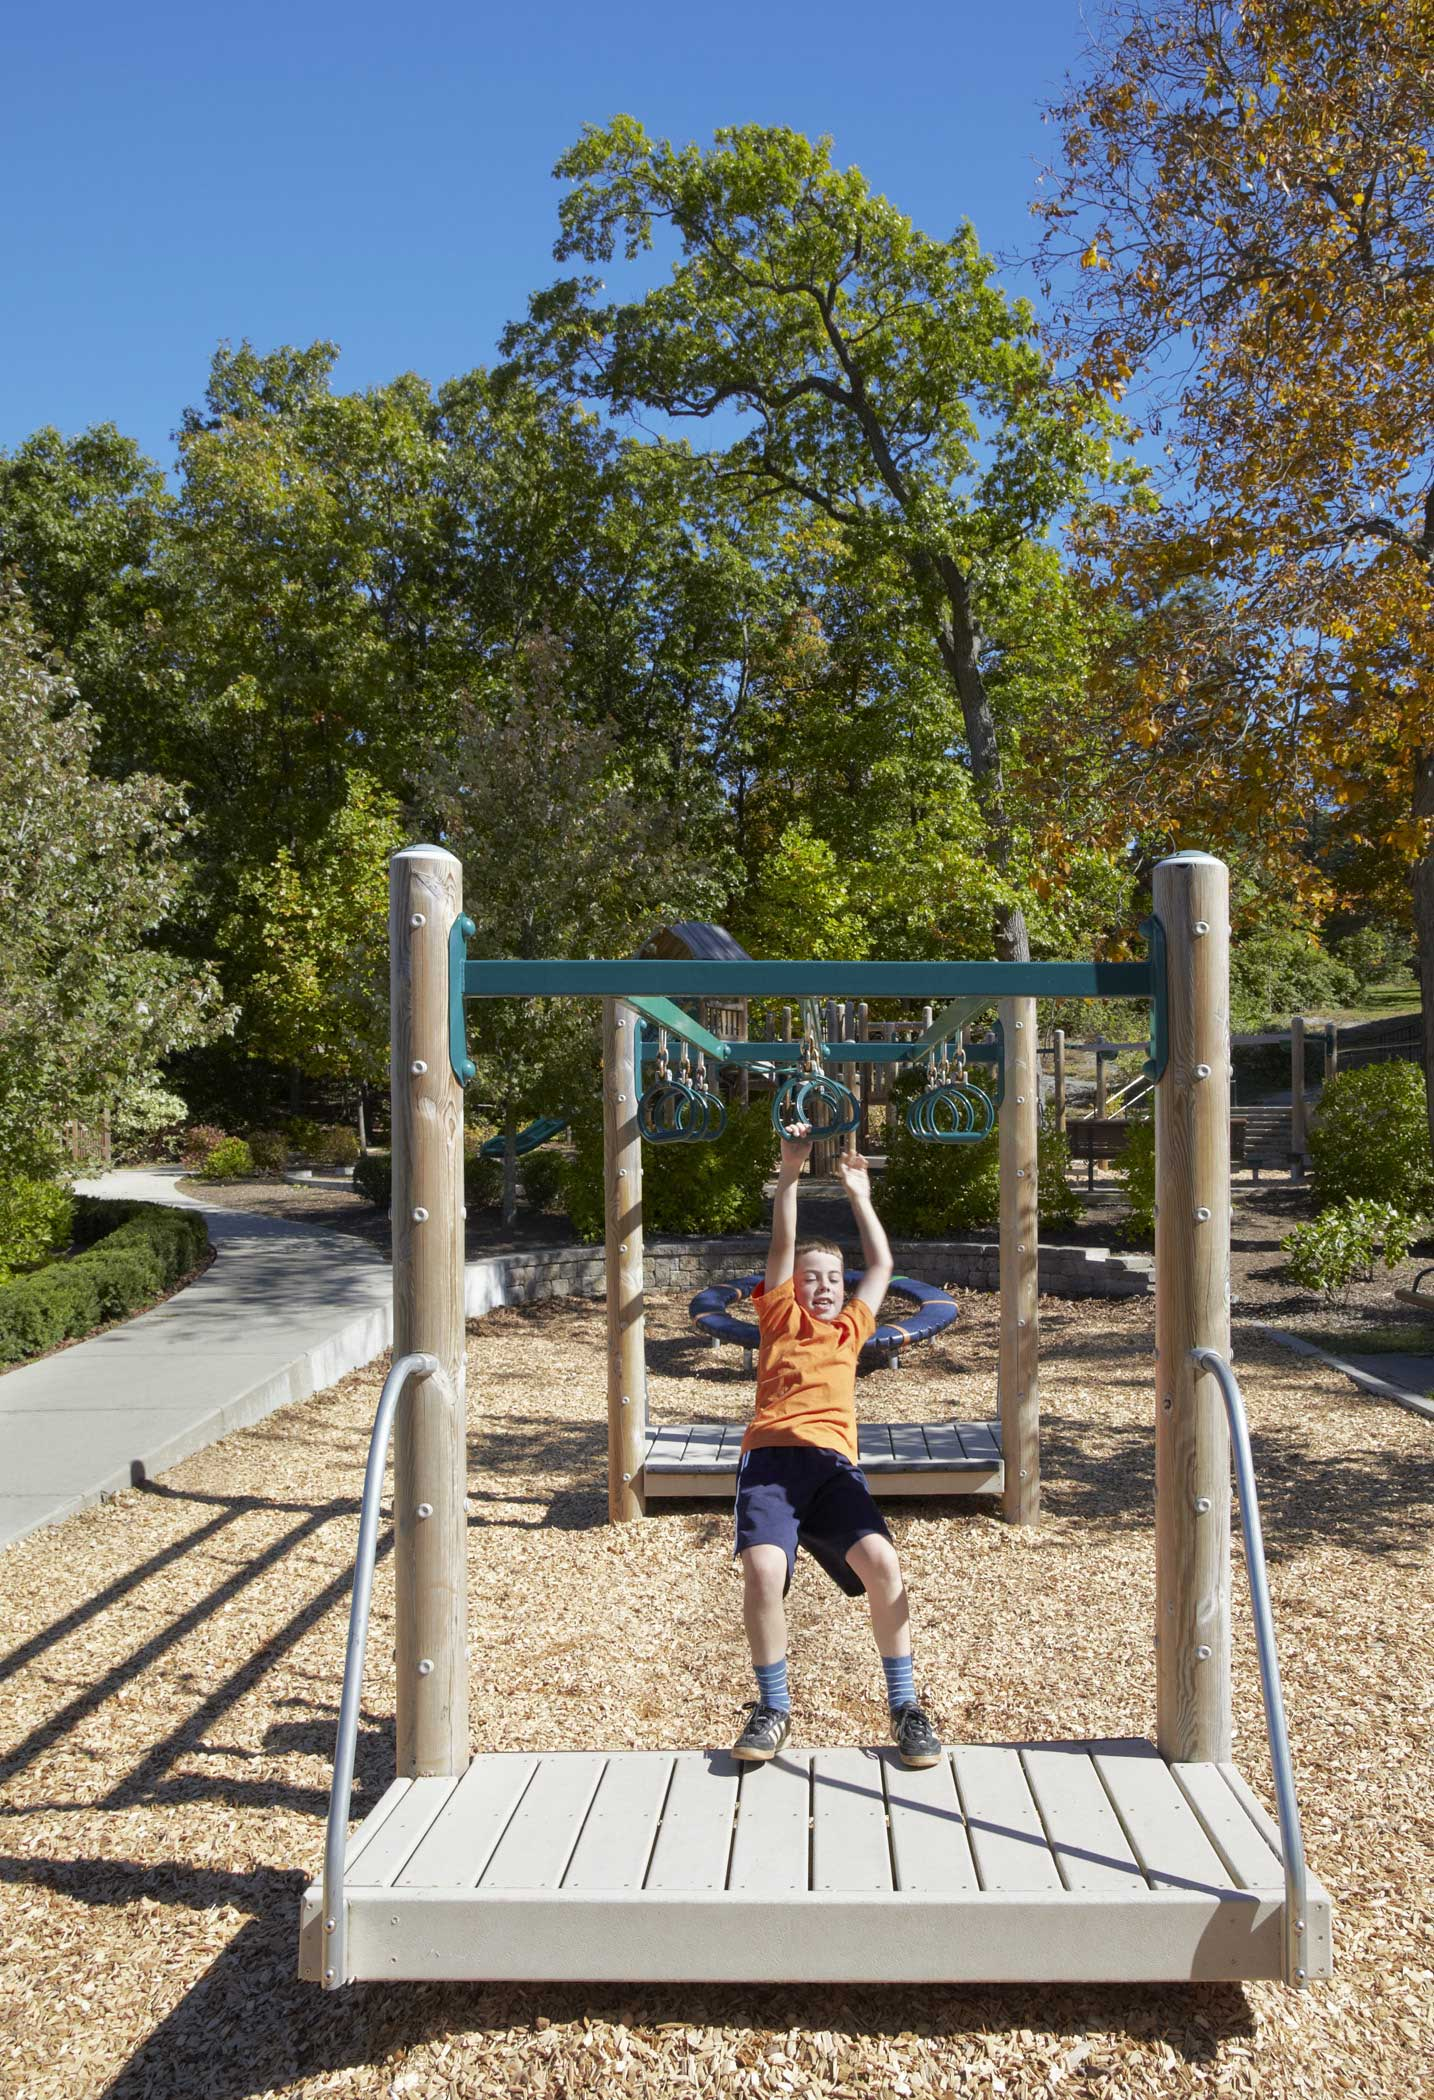 The Park School Playground